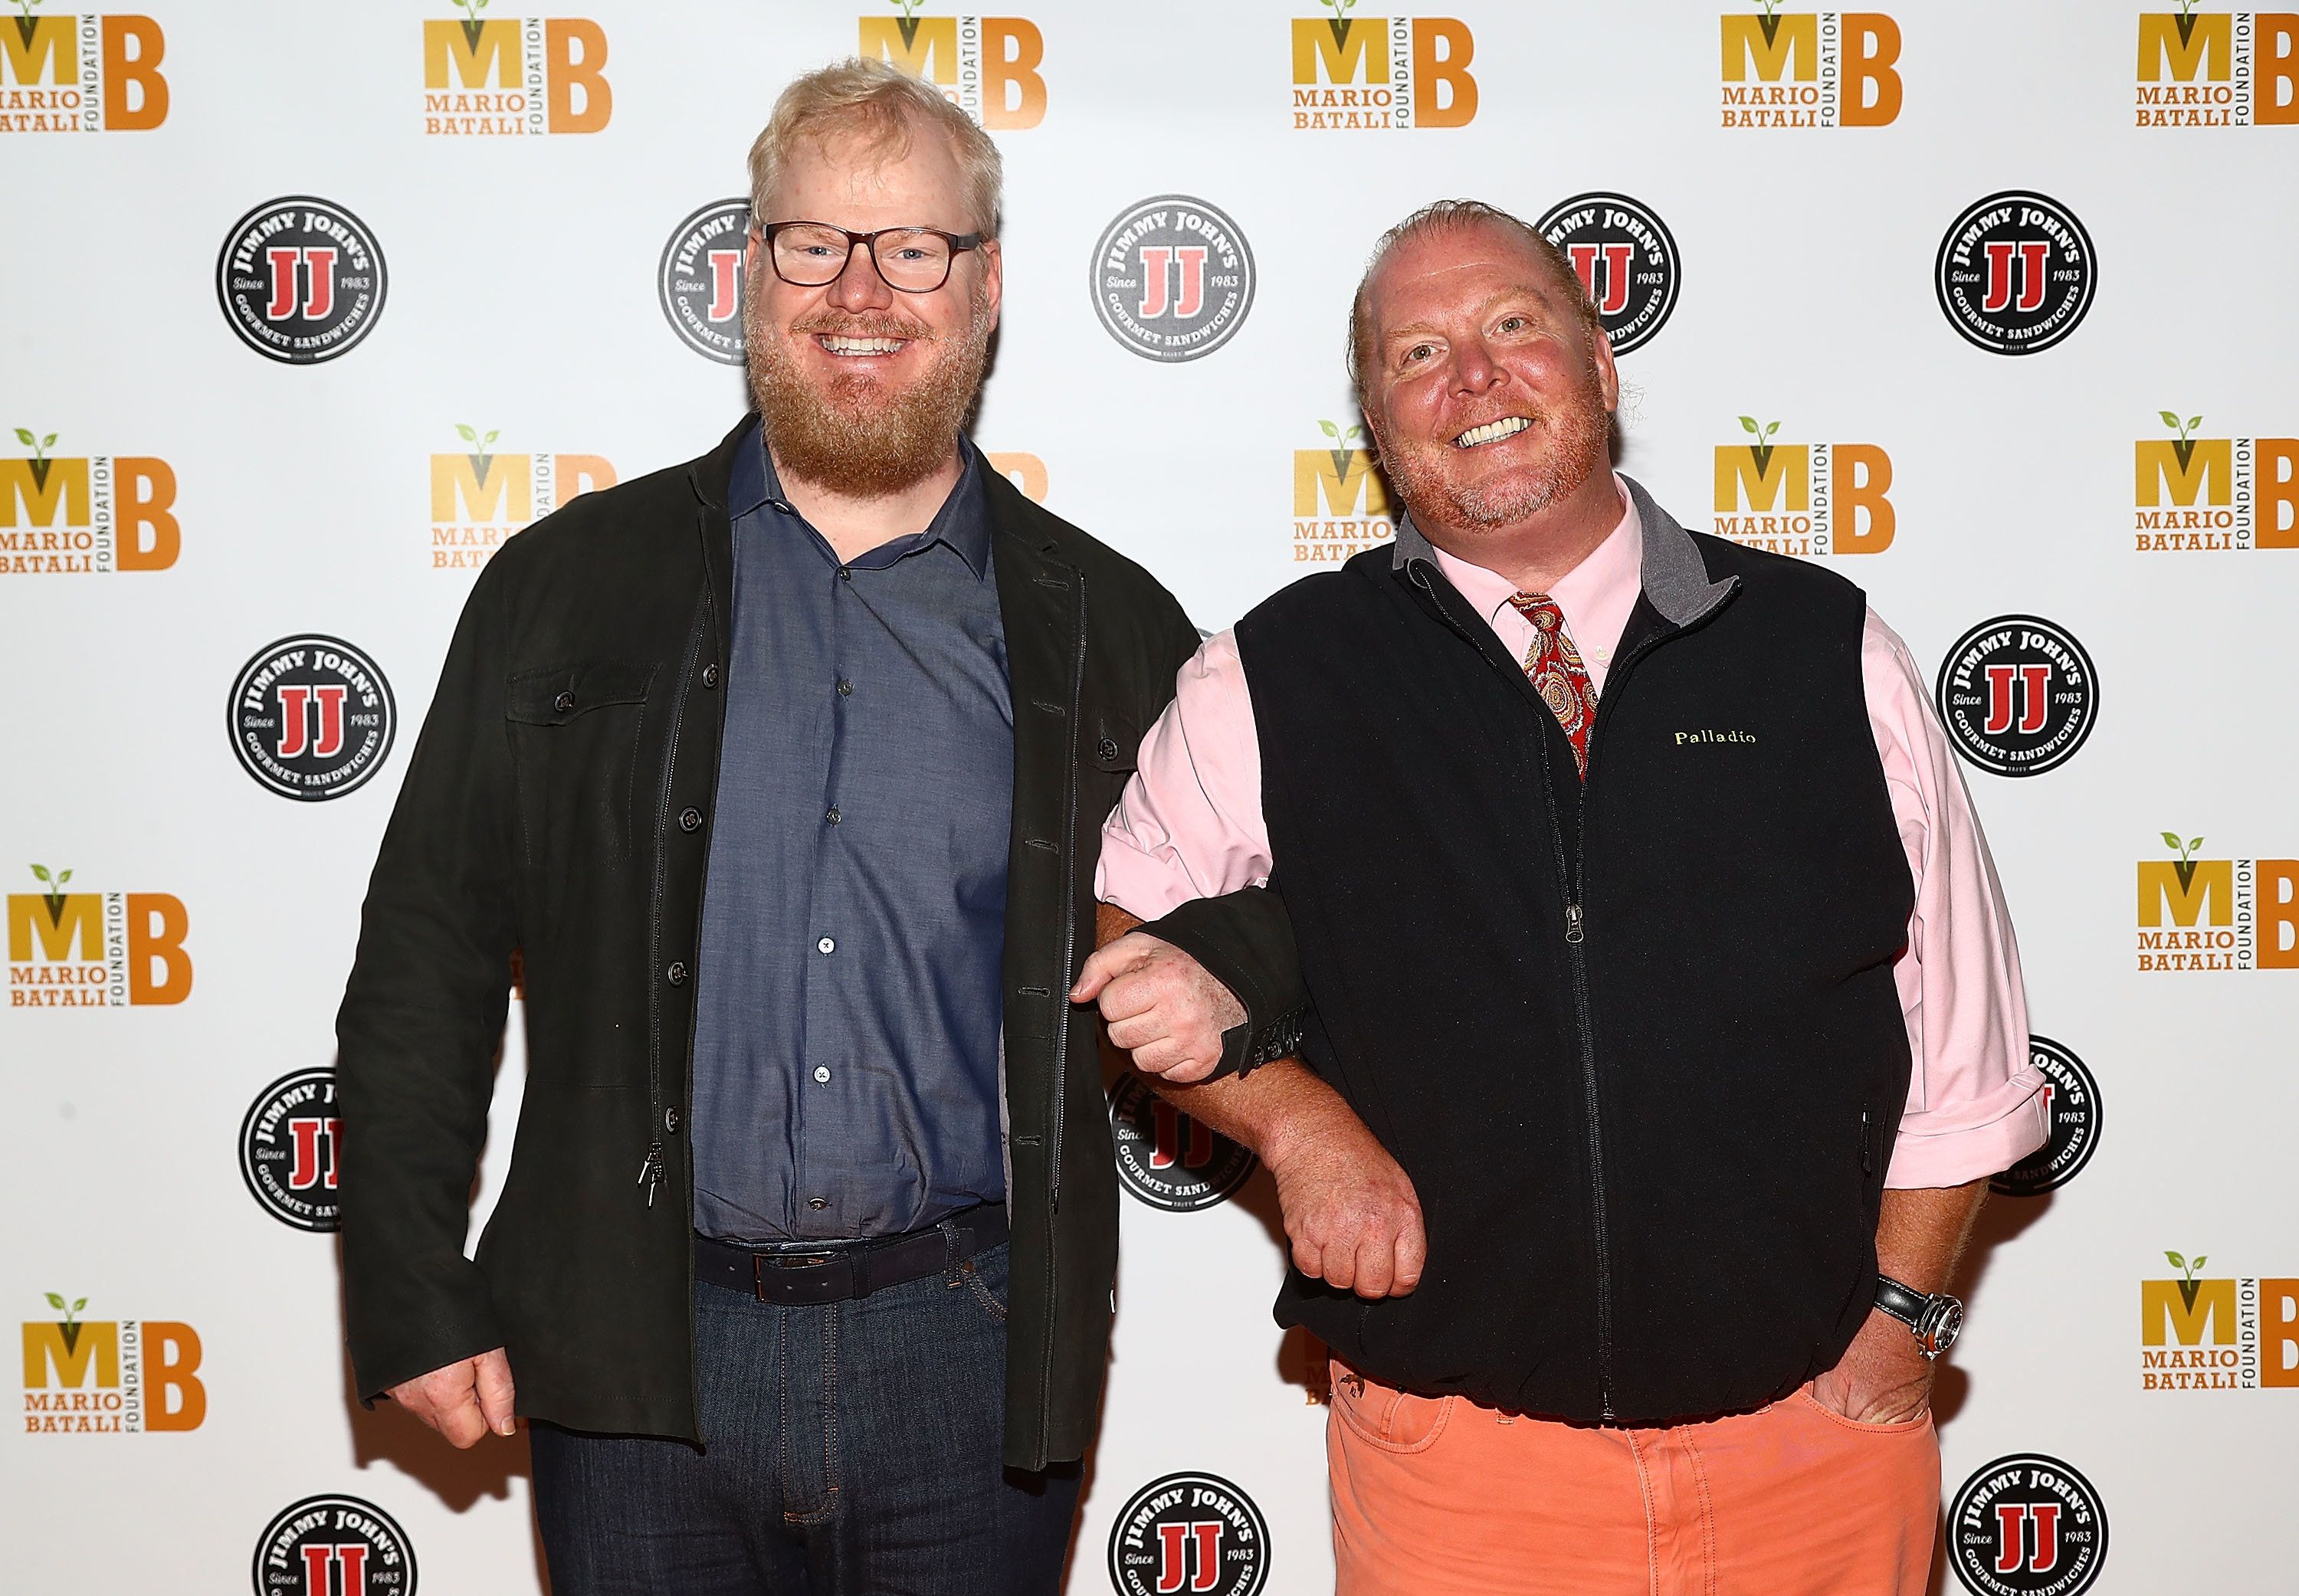 Jim Gaffigan and Mario Batali attend the 6th Annual Mario Batali Foundation Honors dinner on Oct. 15, 2016.